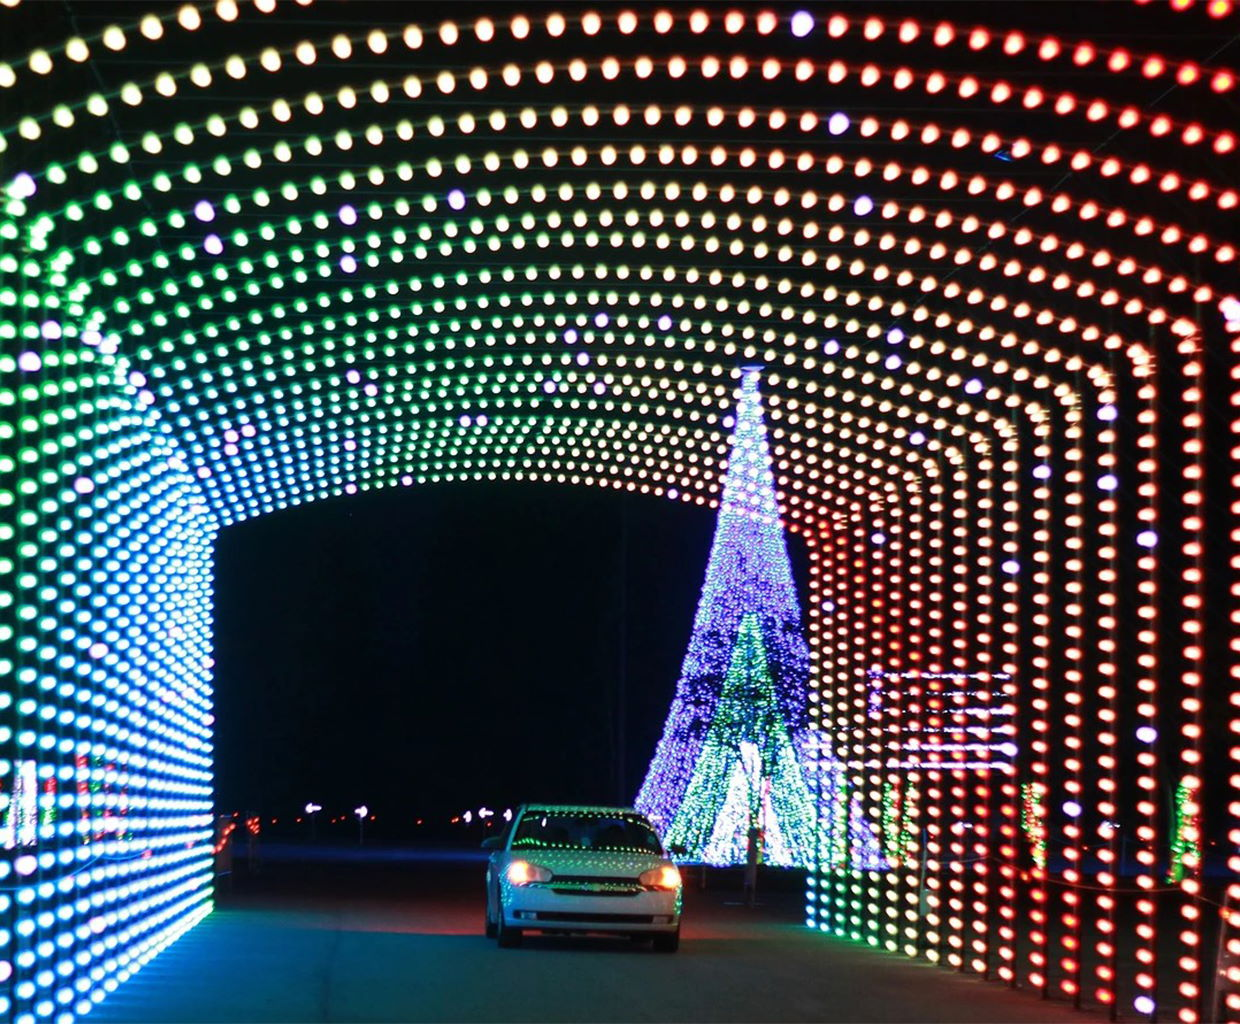 Christmas Night of Lights at the Indiana State Fairgrounds in Indianapolis